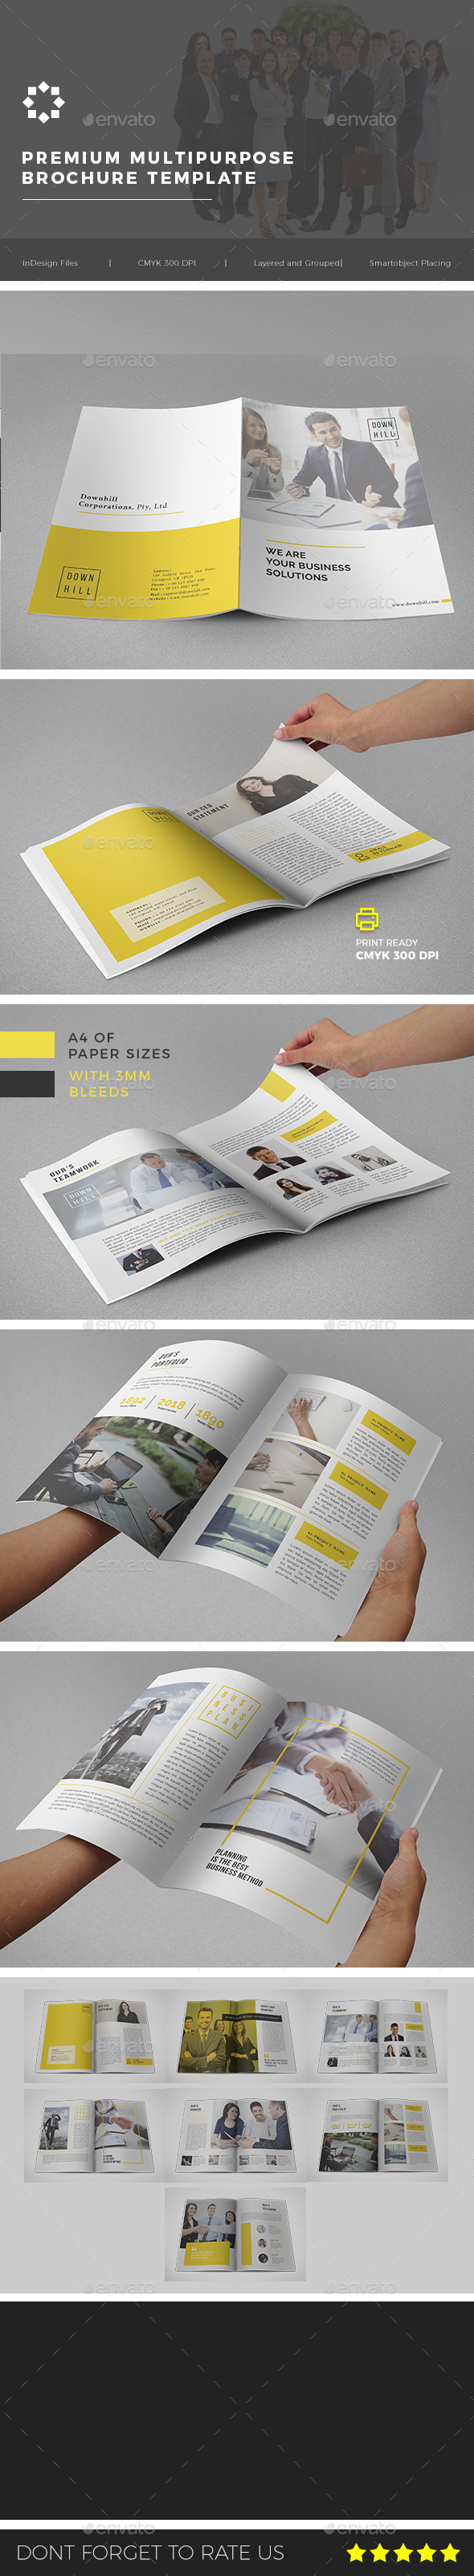 Multipurpose Corporate Brochure Template Vol. 02 - Brochures Print Templates